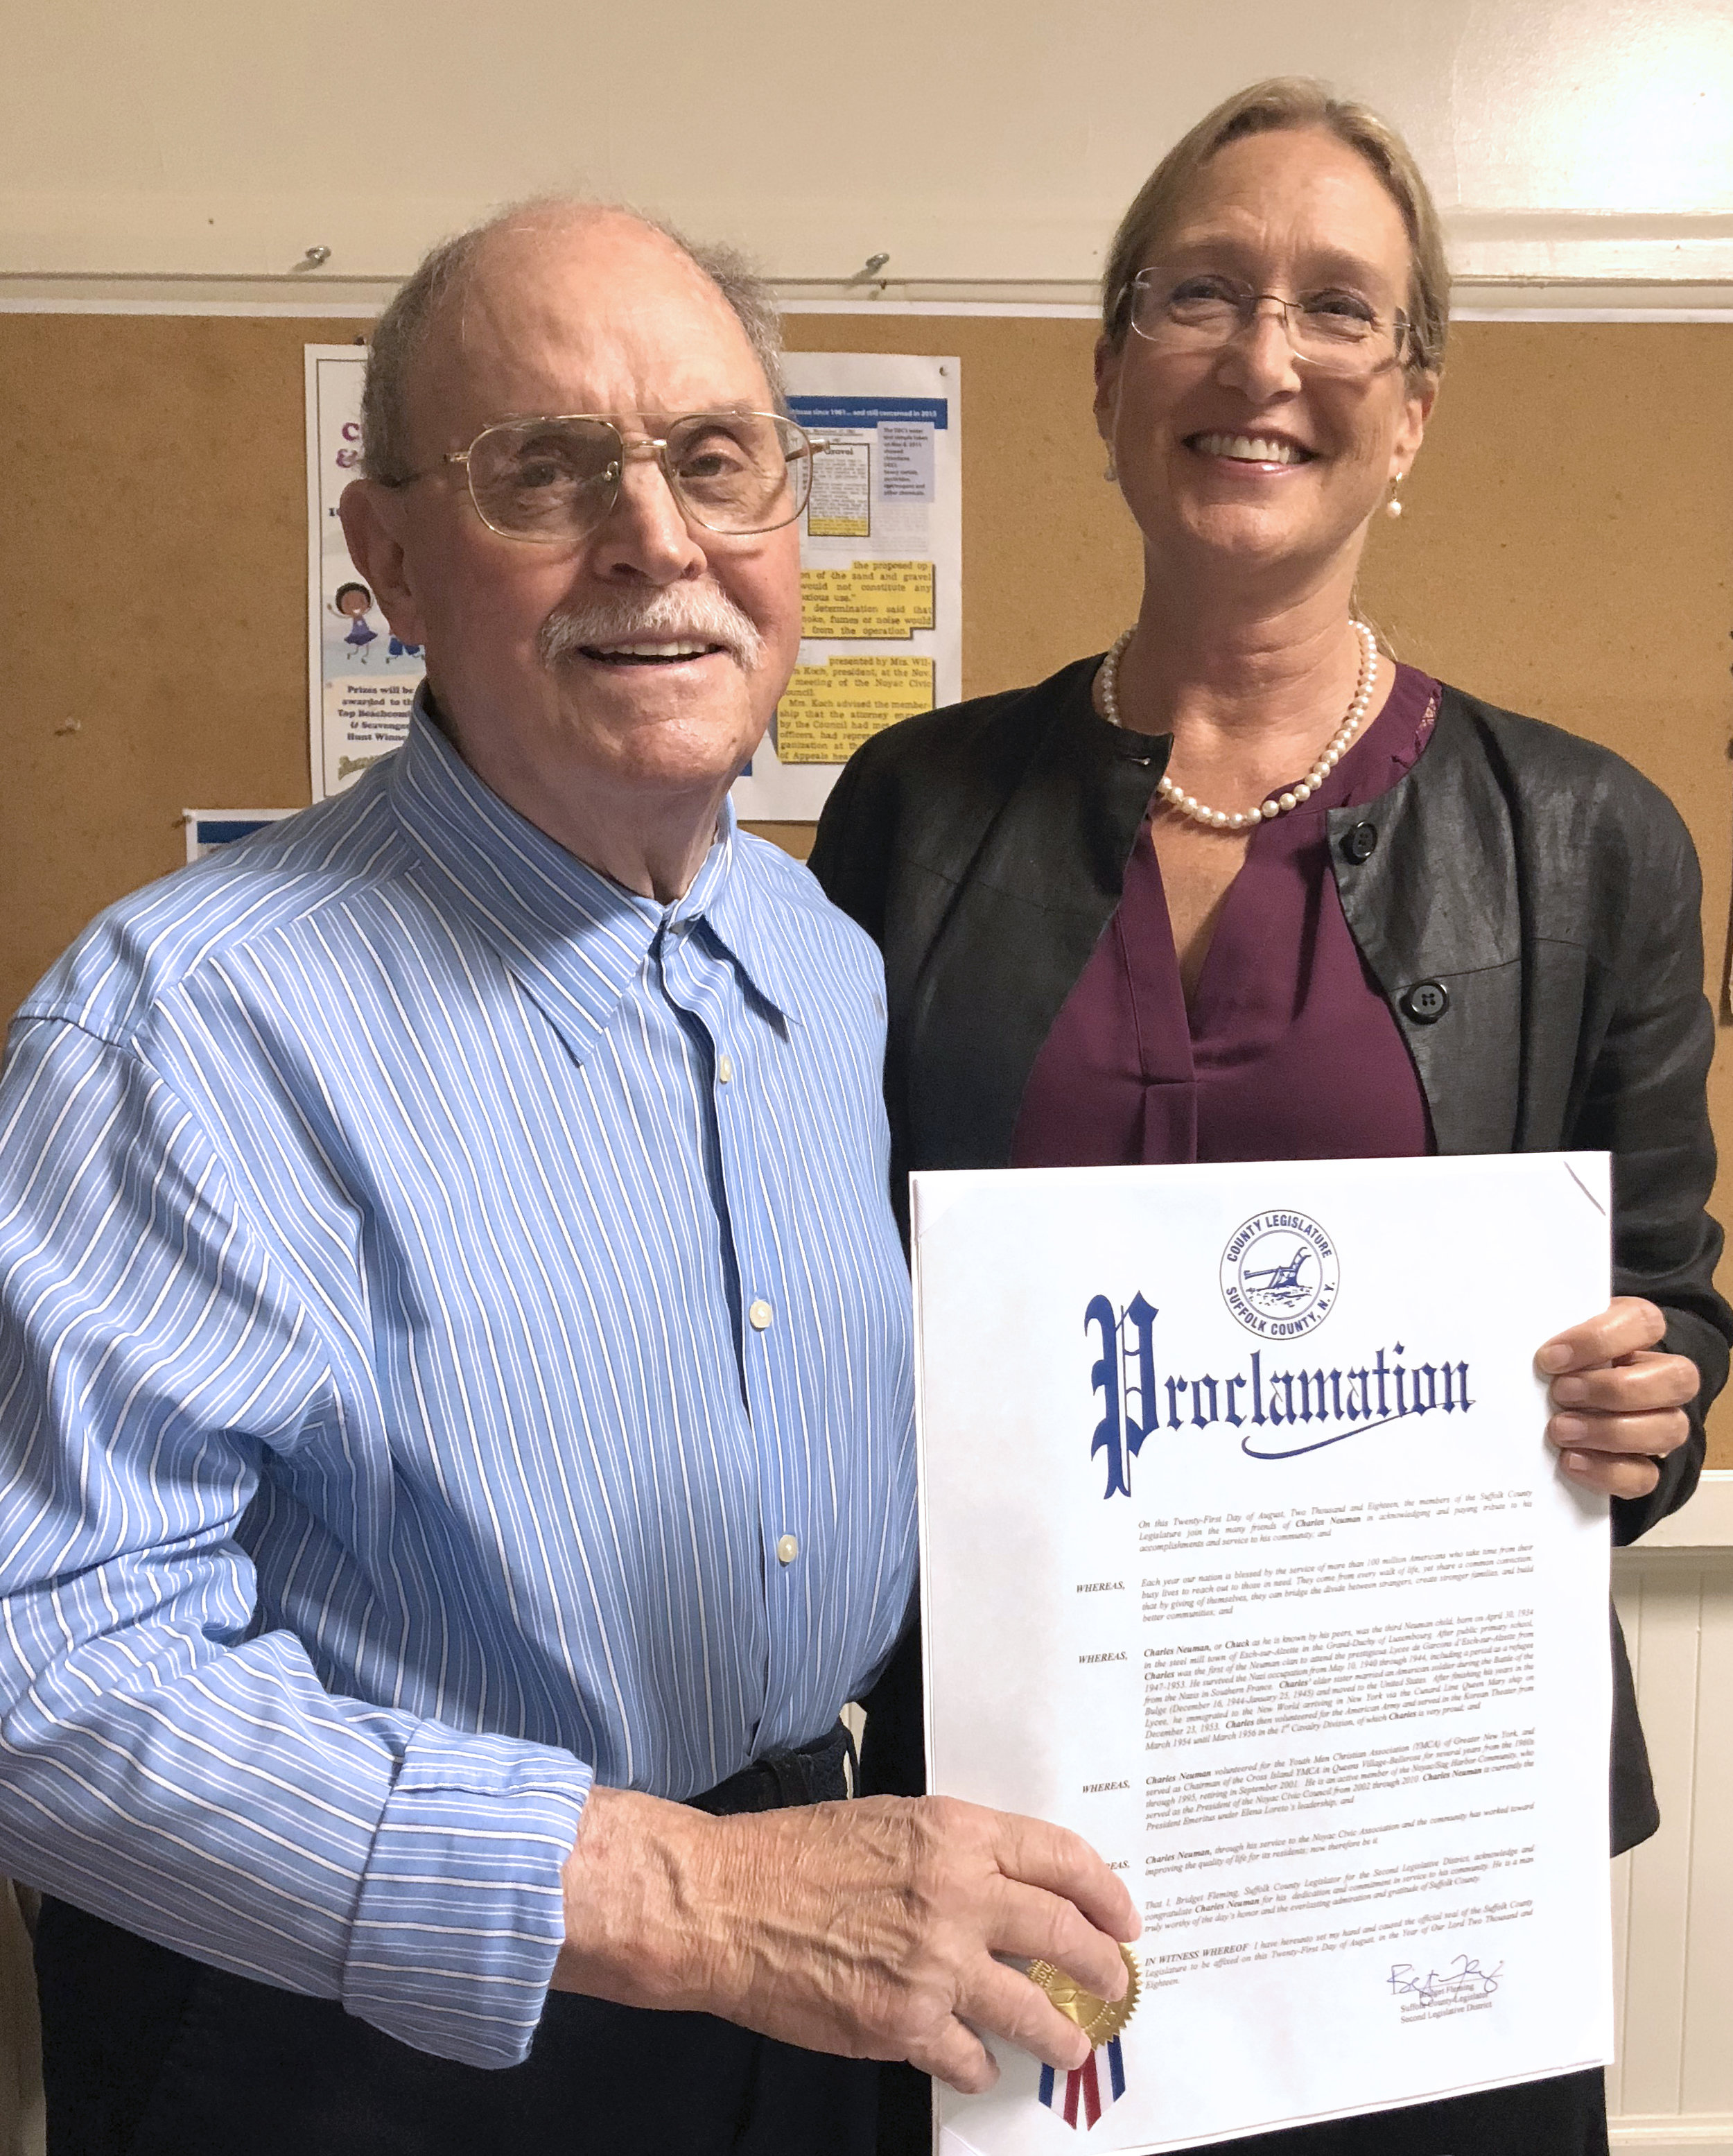 Charles Neuman receives proclamation from Legislator Bridget Flemming